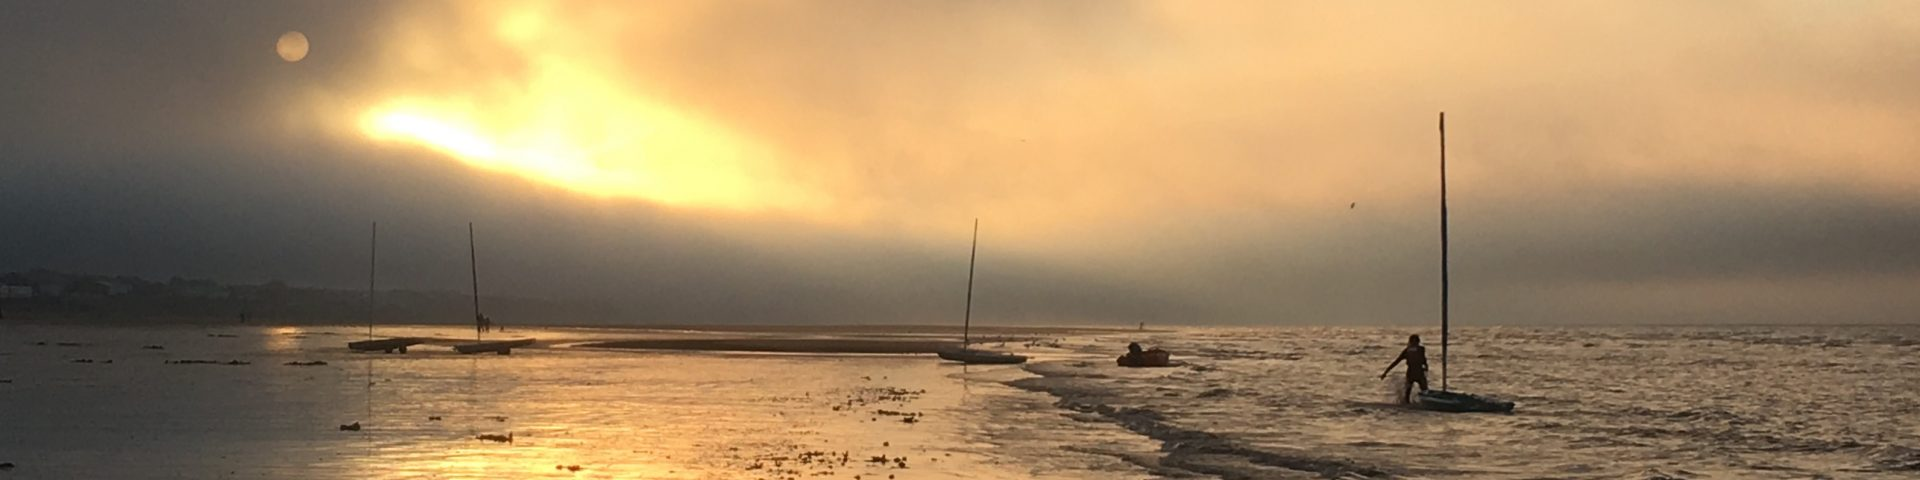 sun setting behind clouds with boats in the foreground